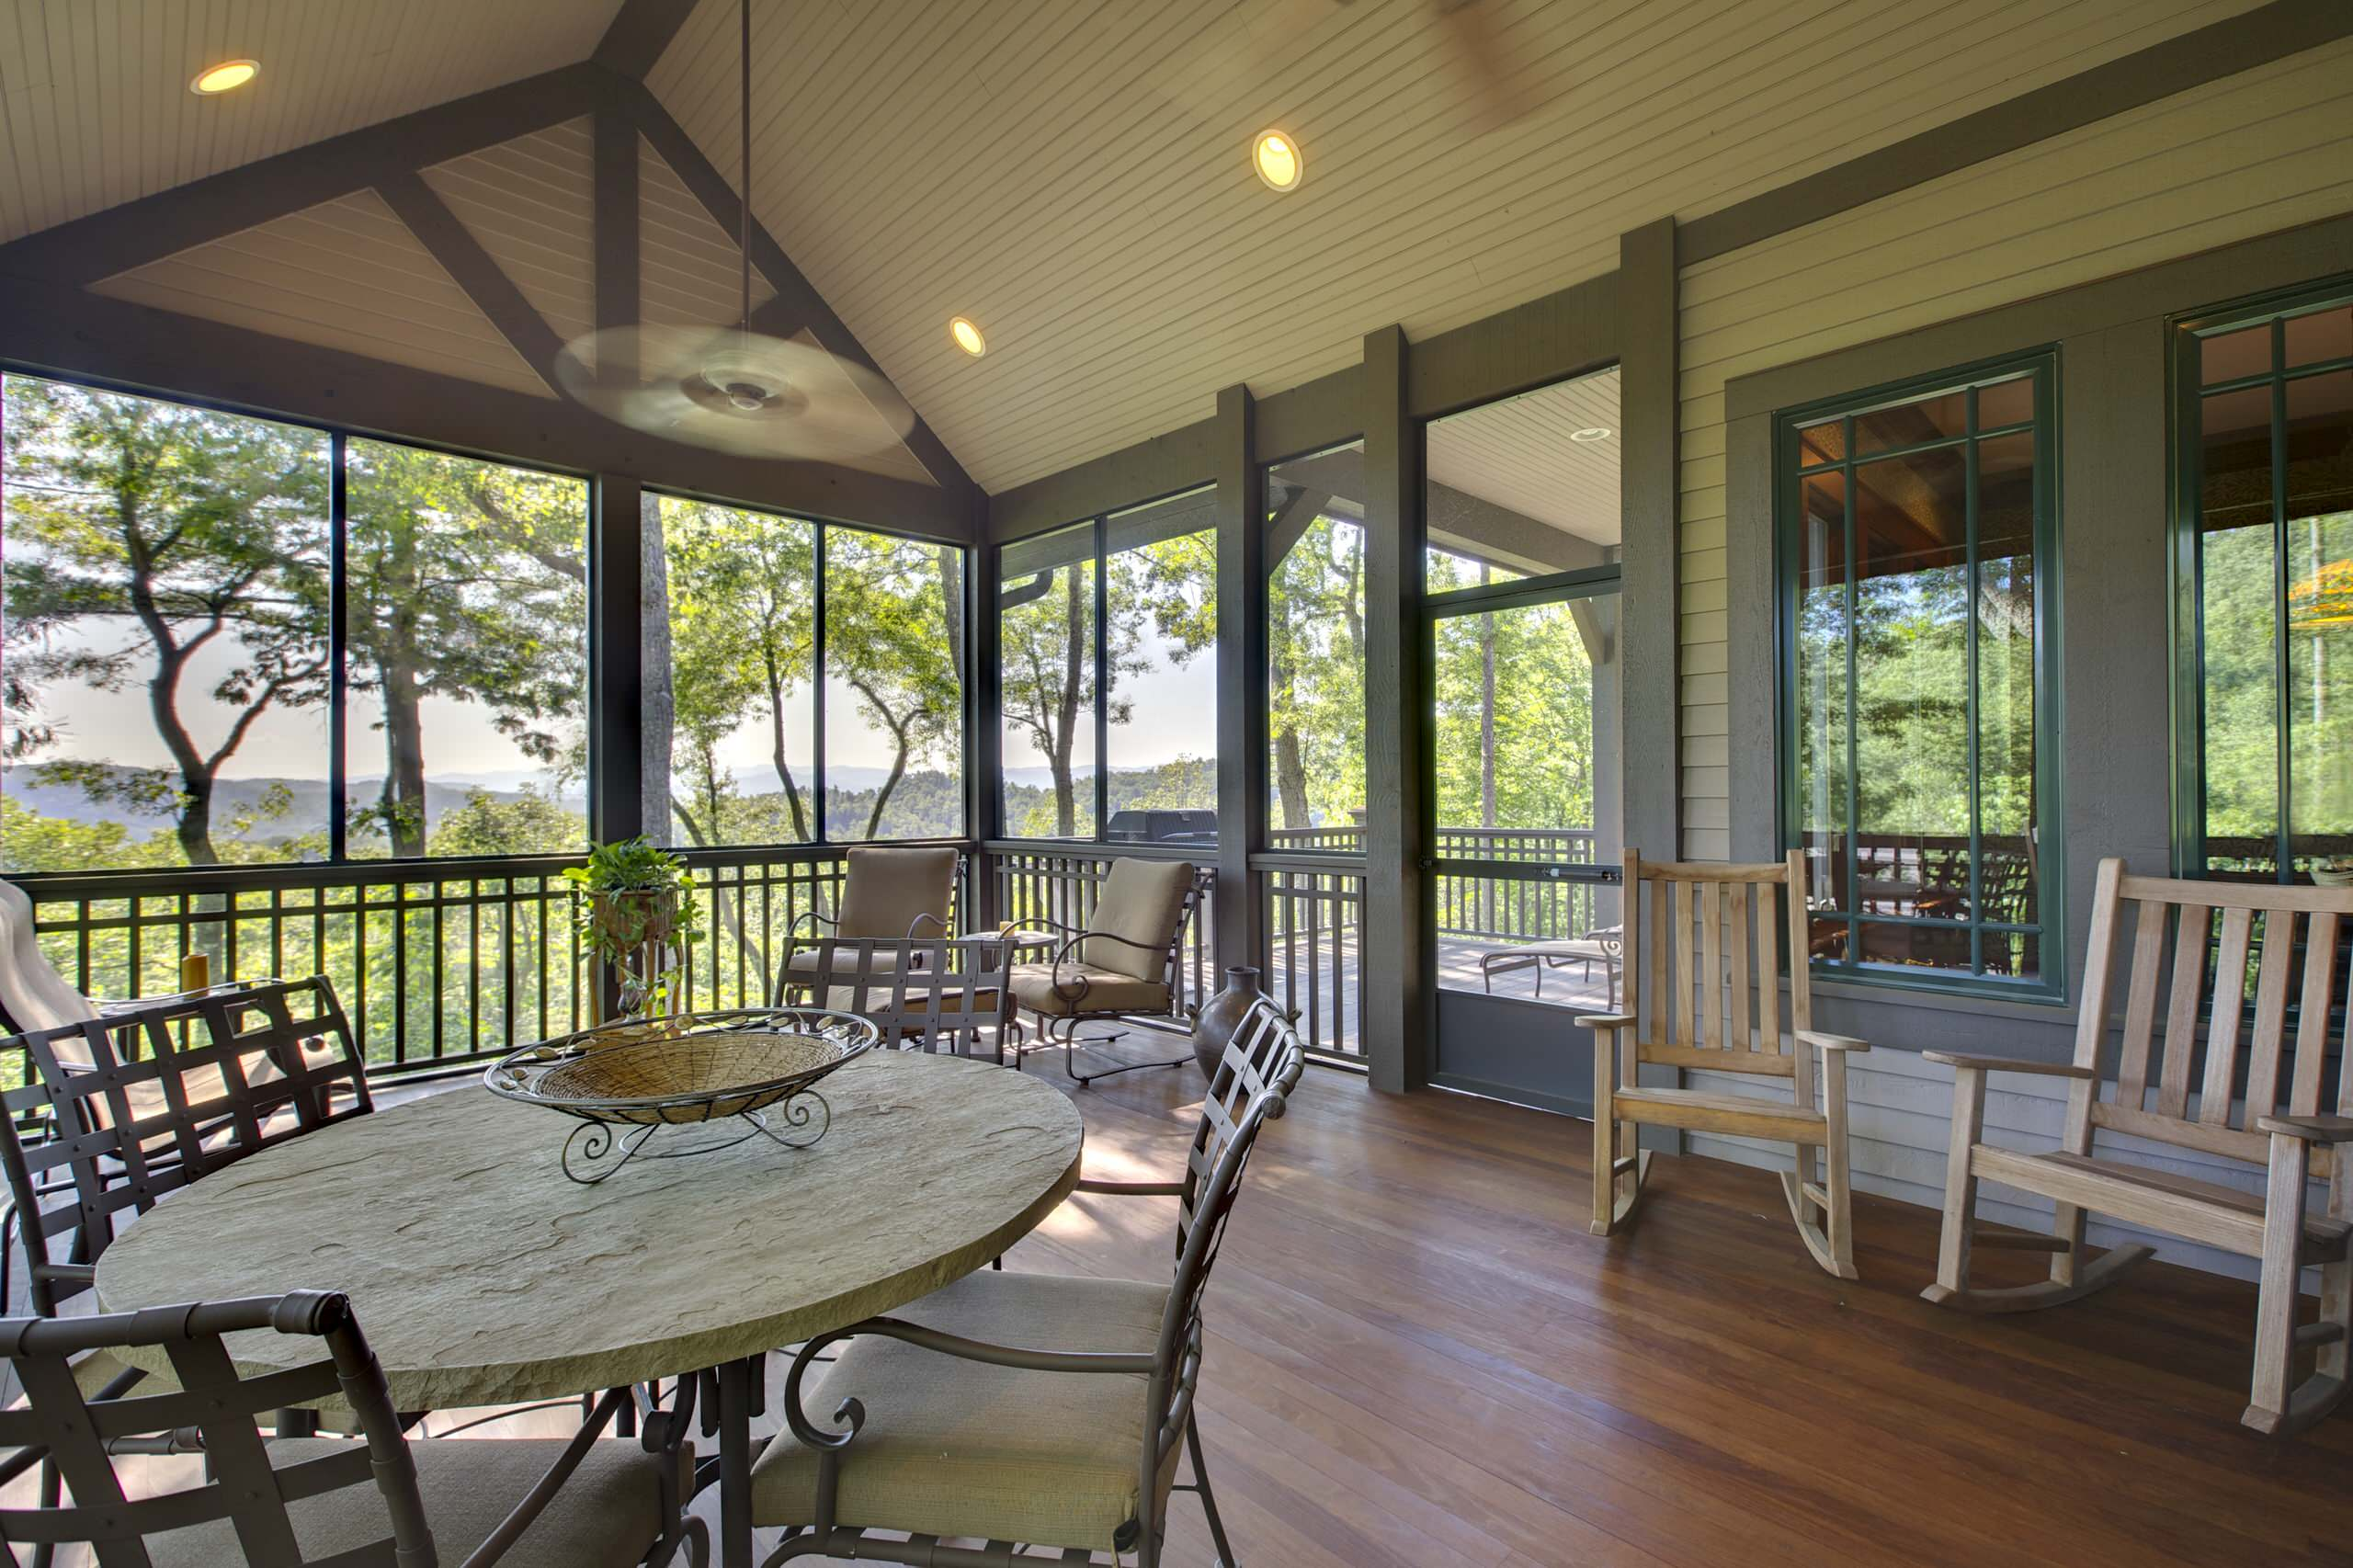 10 Astounding Porches for Your Lovely Home: Porch Railings With Outdoor Kitchen And Window Molding Also Shiplap Siding And Patio Furniture With Wood Flooring Plus Ceiling Fan With Recessed Lighting For Porches